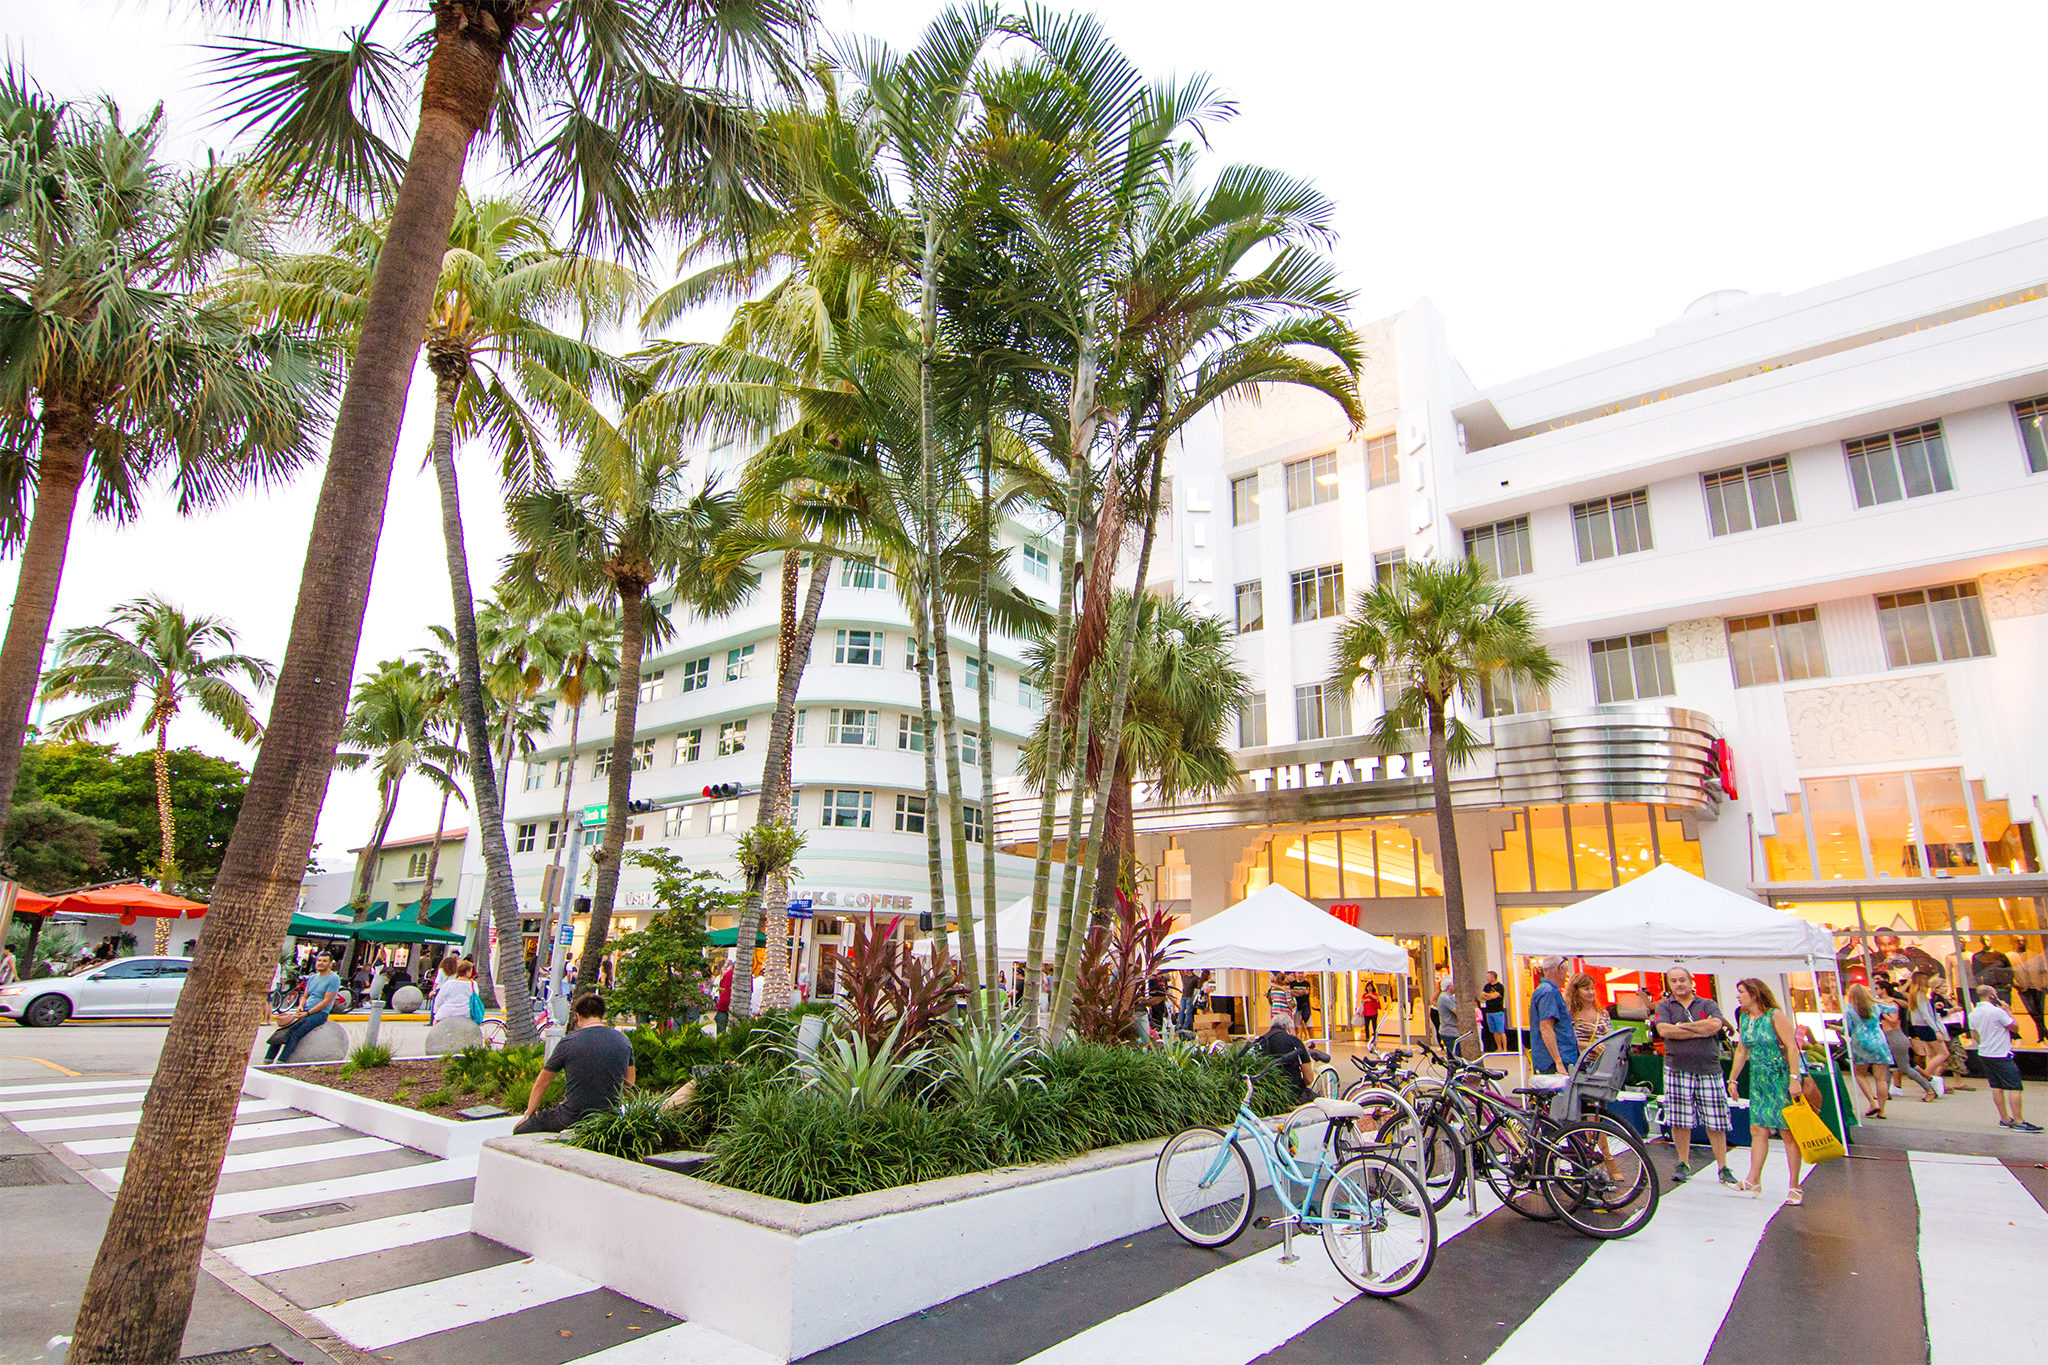 Shop, sip and snack on Lincoln Road